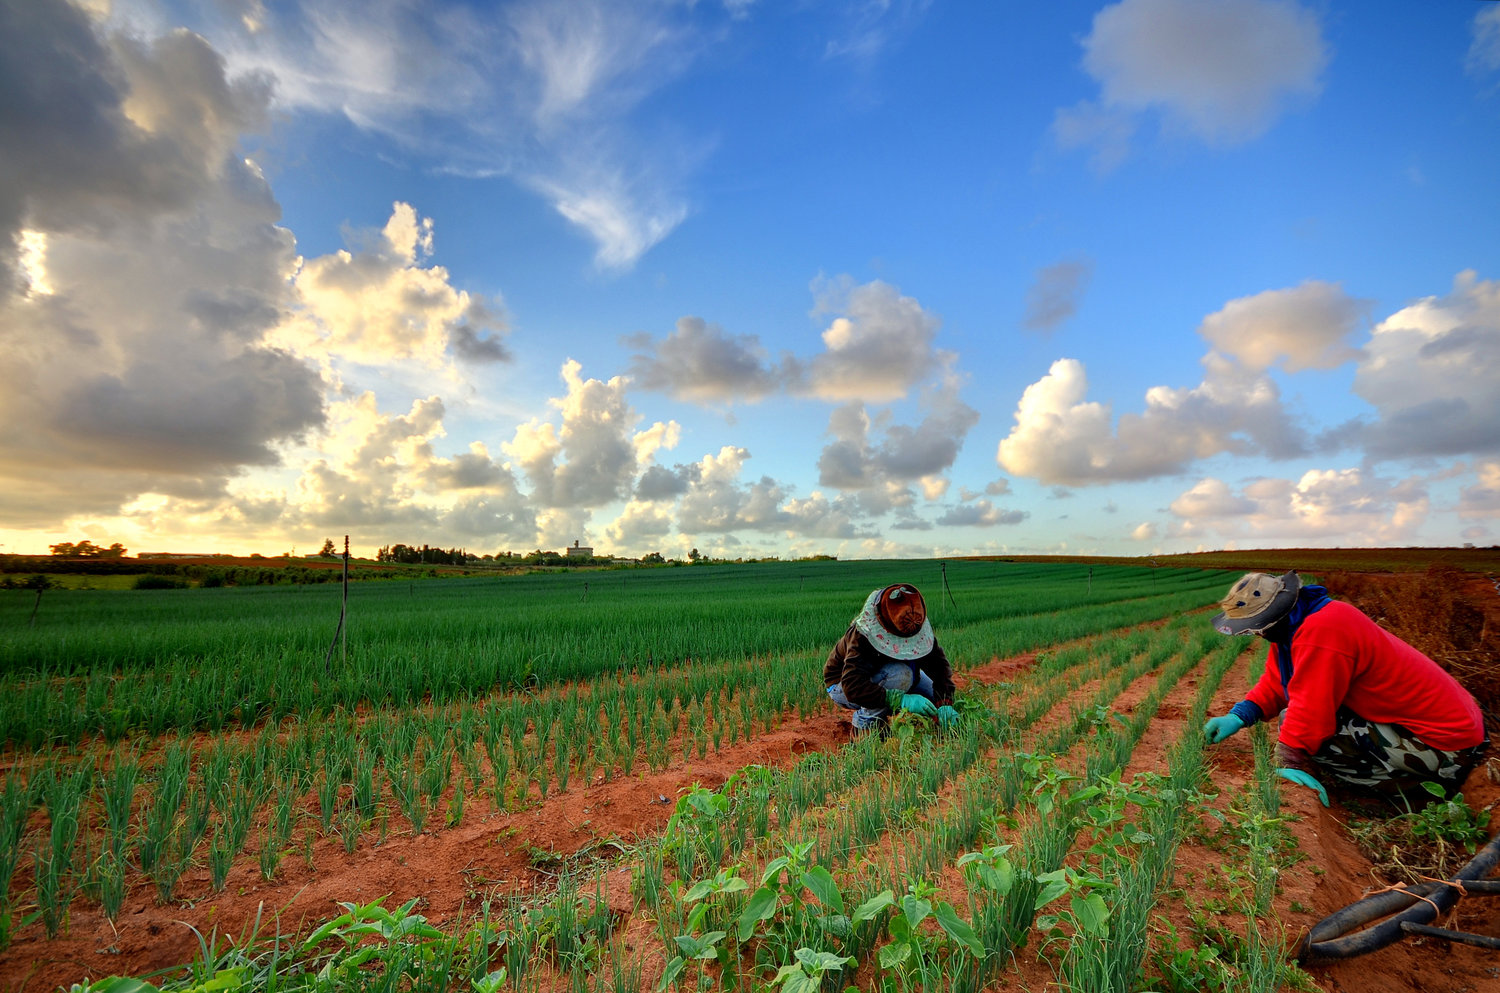 Australia's agricultural sector has been criticised for the way it has treated migrant workers.